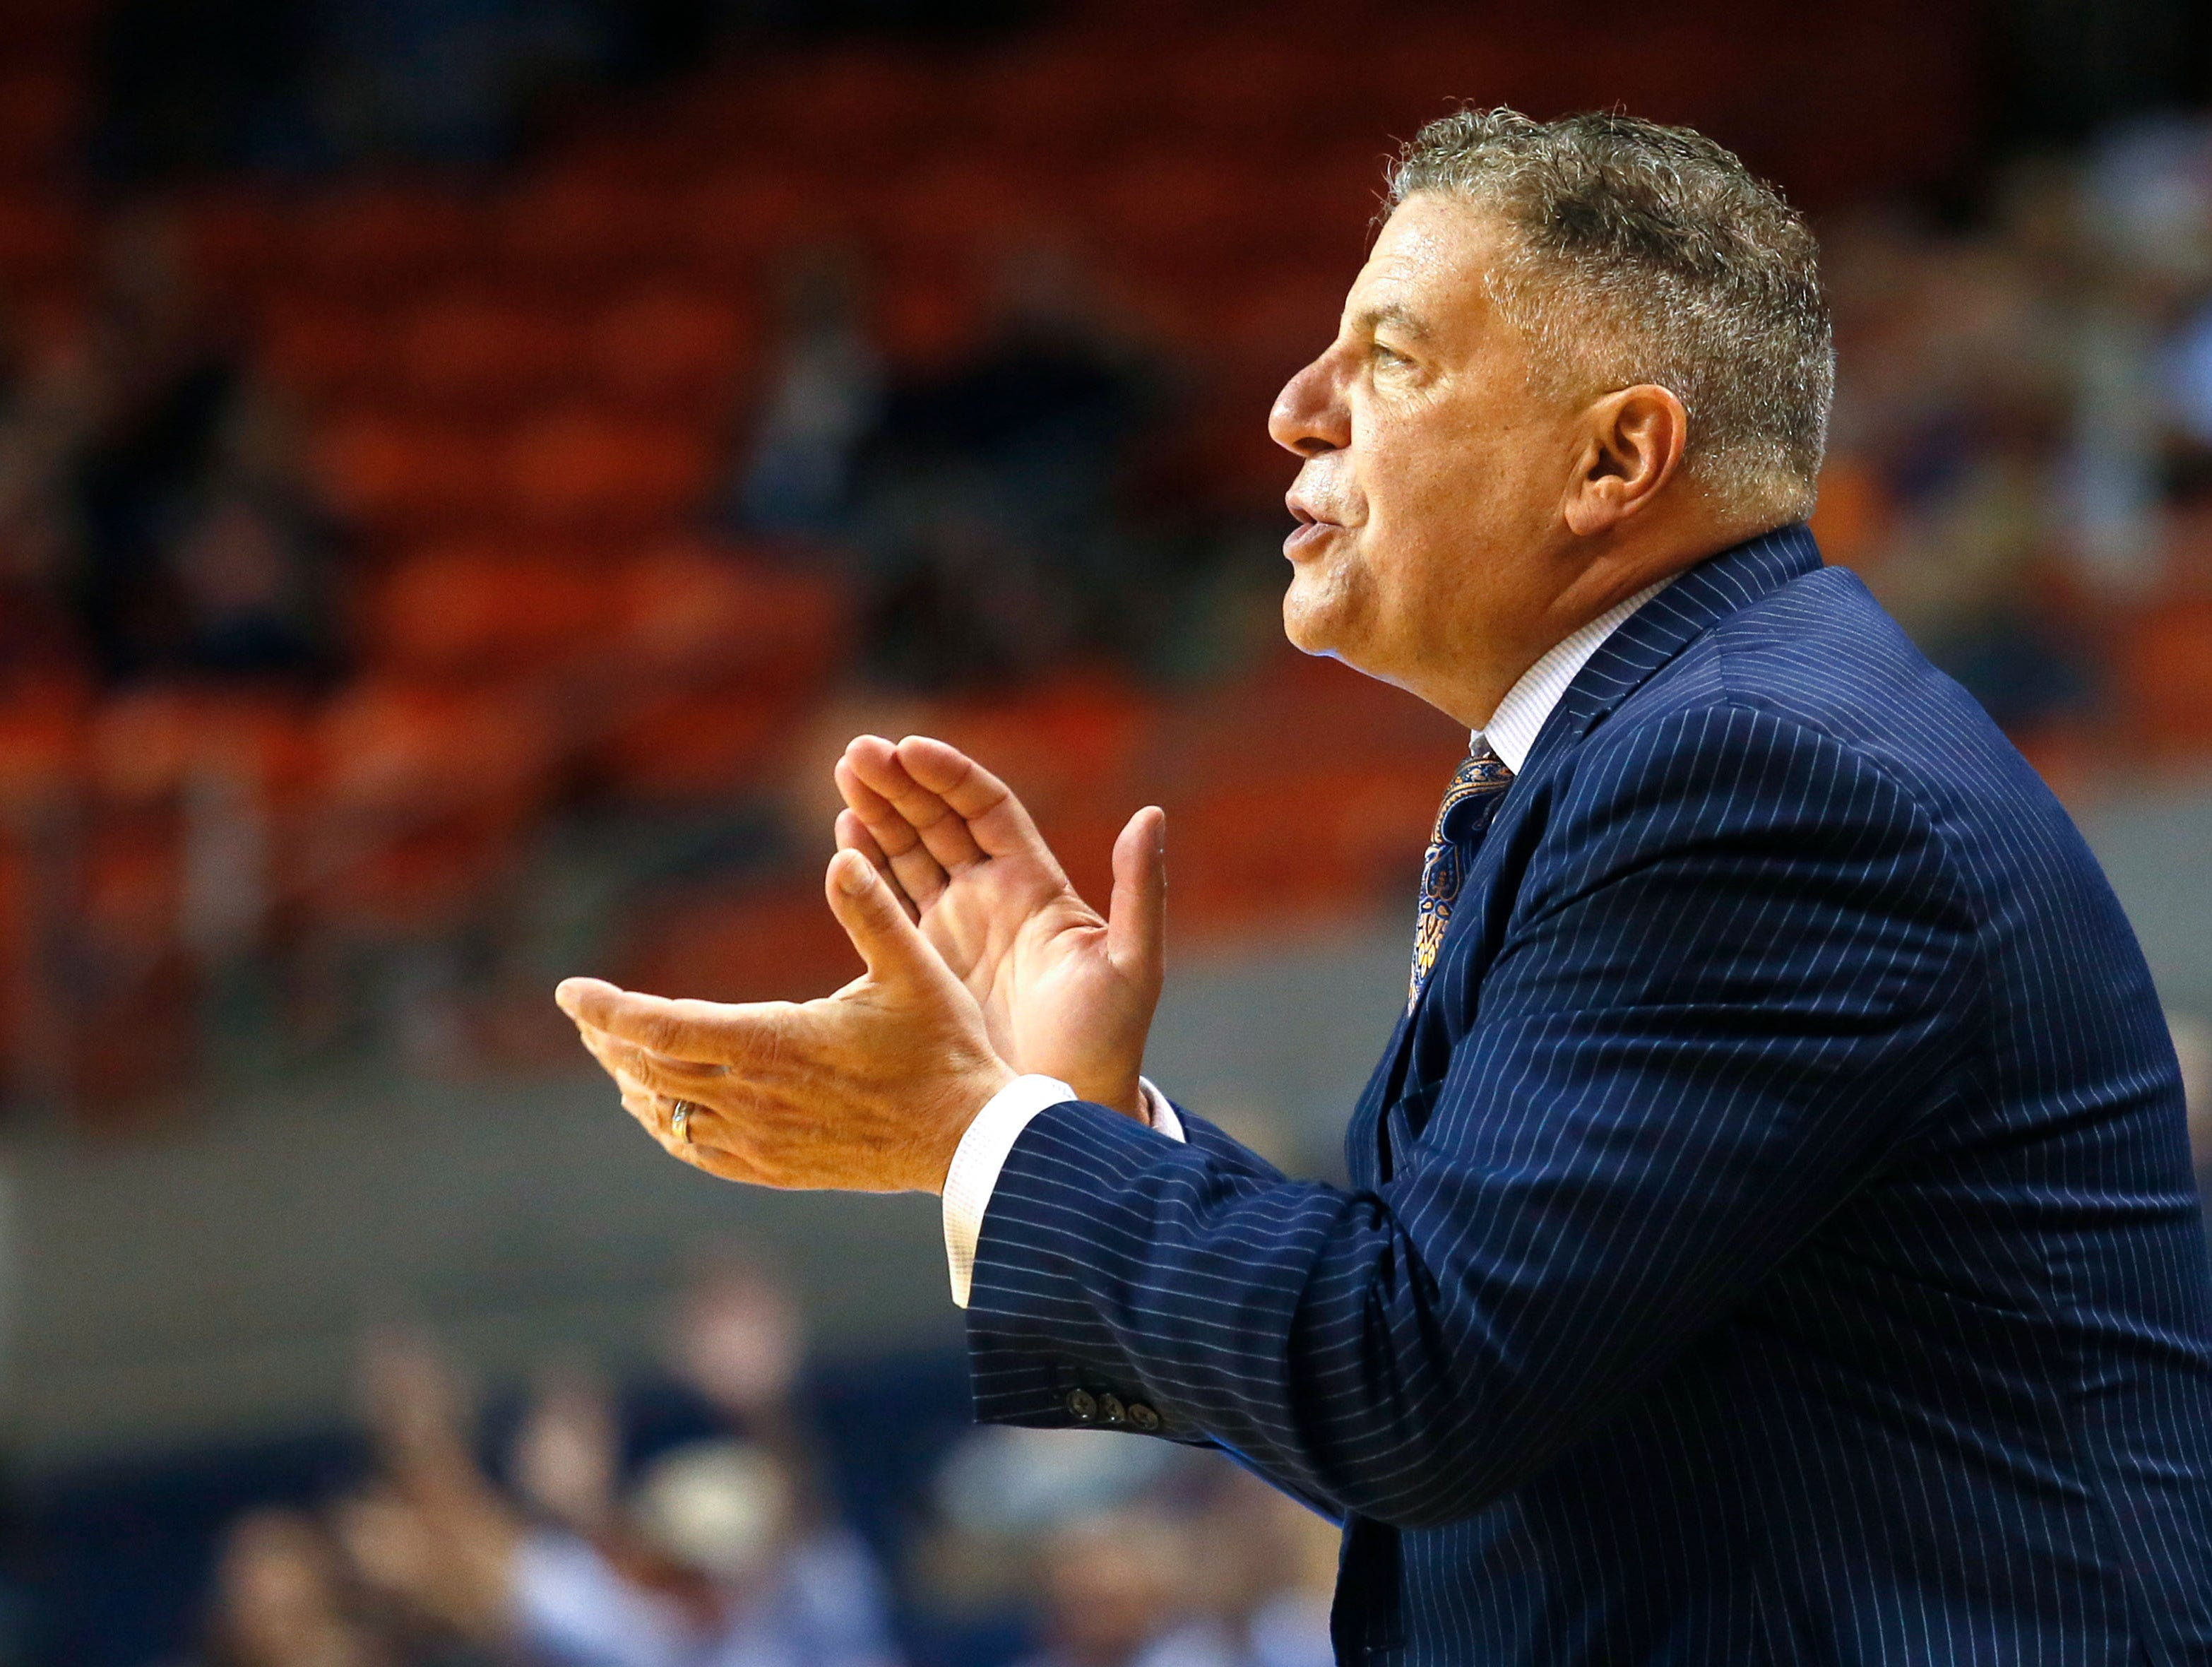 Auburn head coach Bruce Pearl directs his team during a game against South Alabama on Nov. 6, 2018.